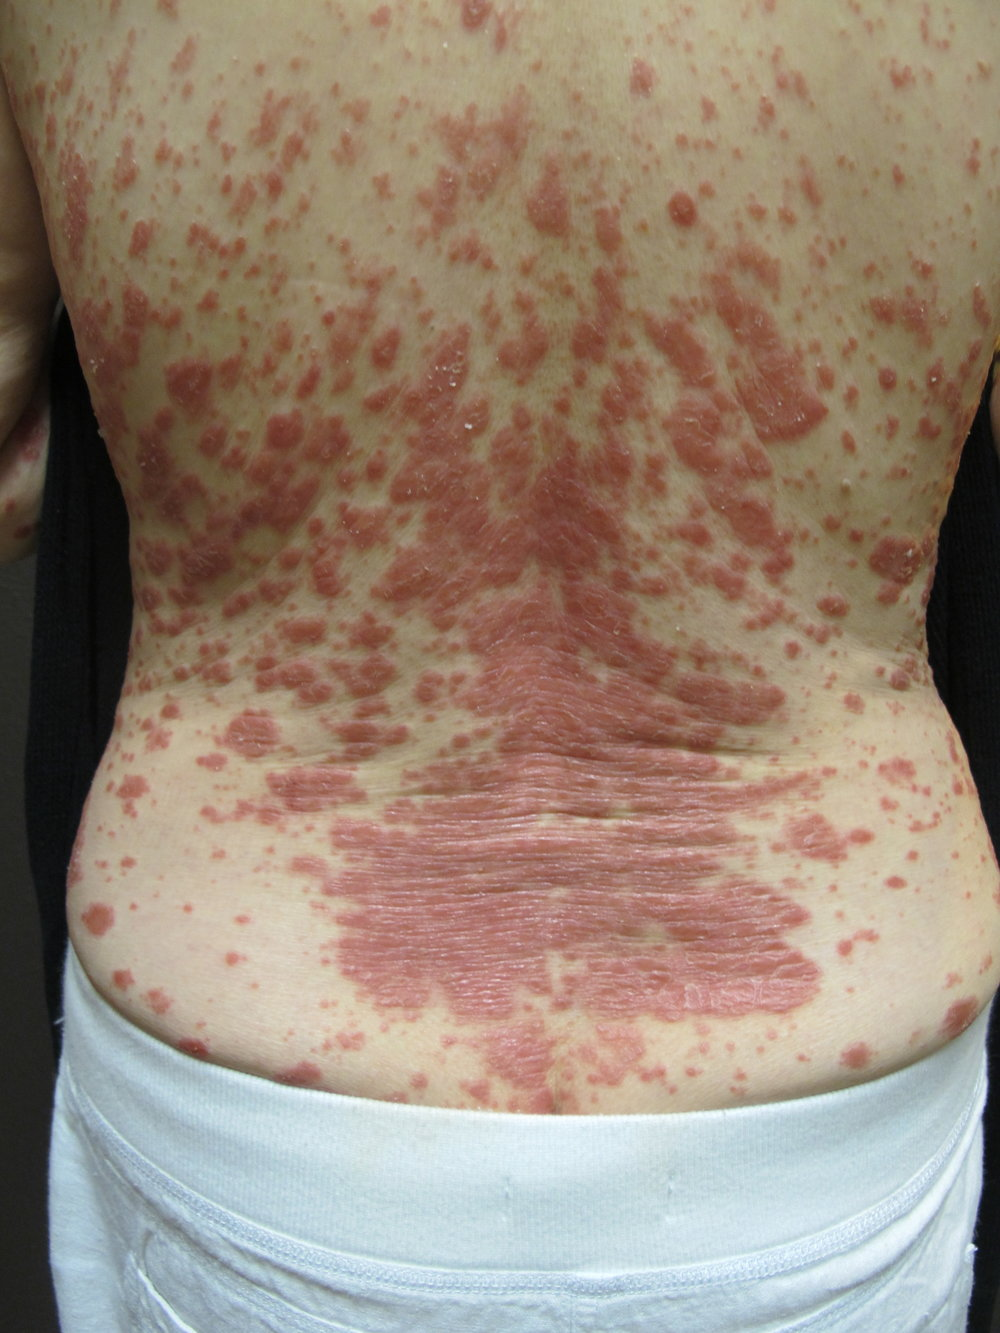 DERMATITIS | SKIN RASH | BEFORE